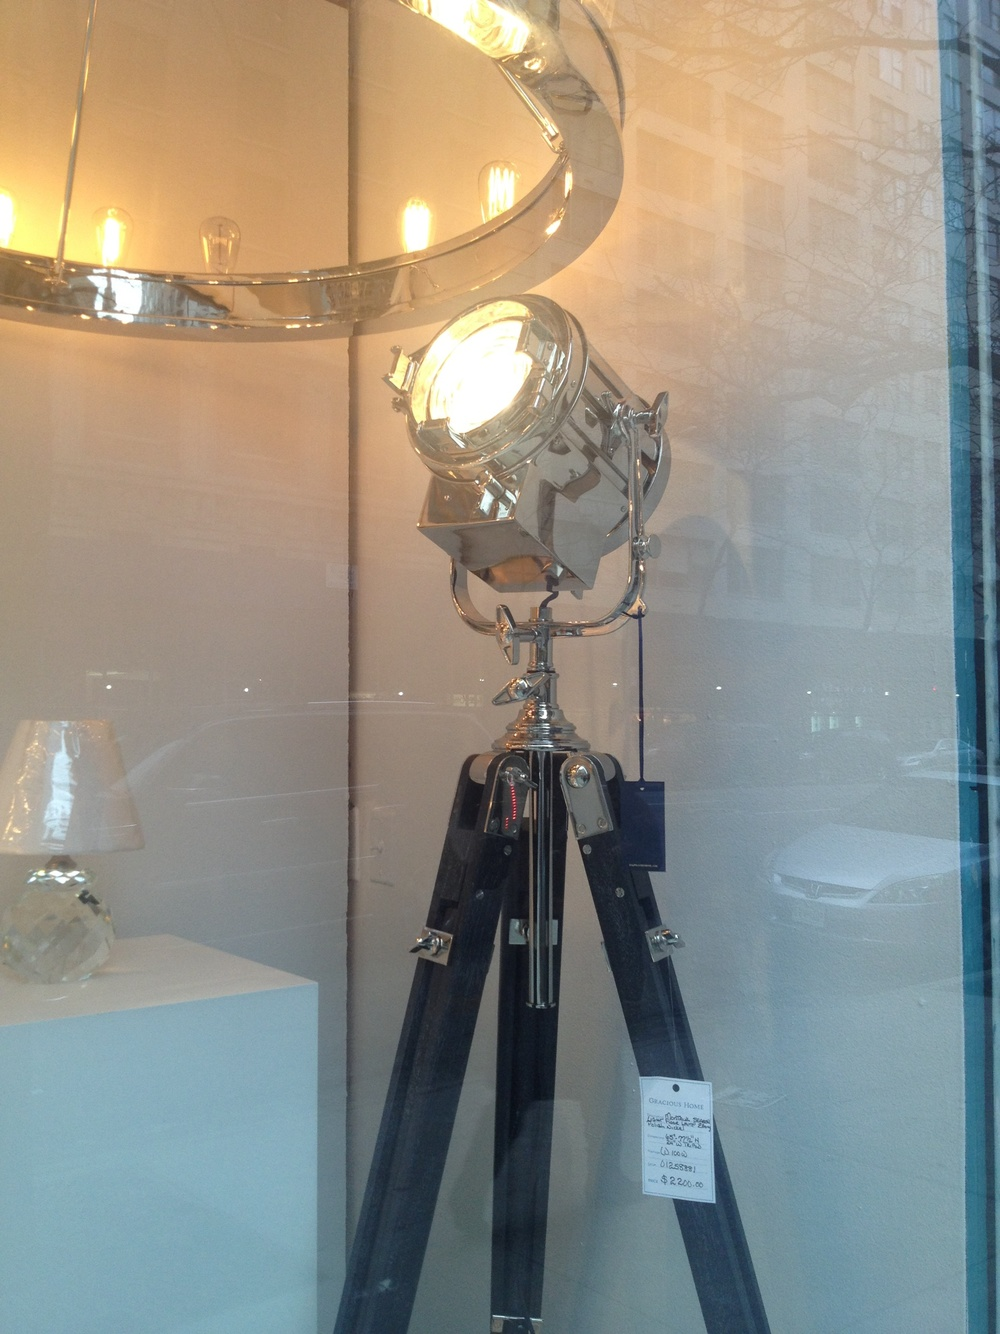 I saw this fixture walking by the window of Gracious Home the other day.